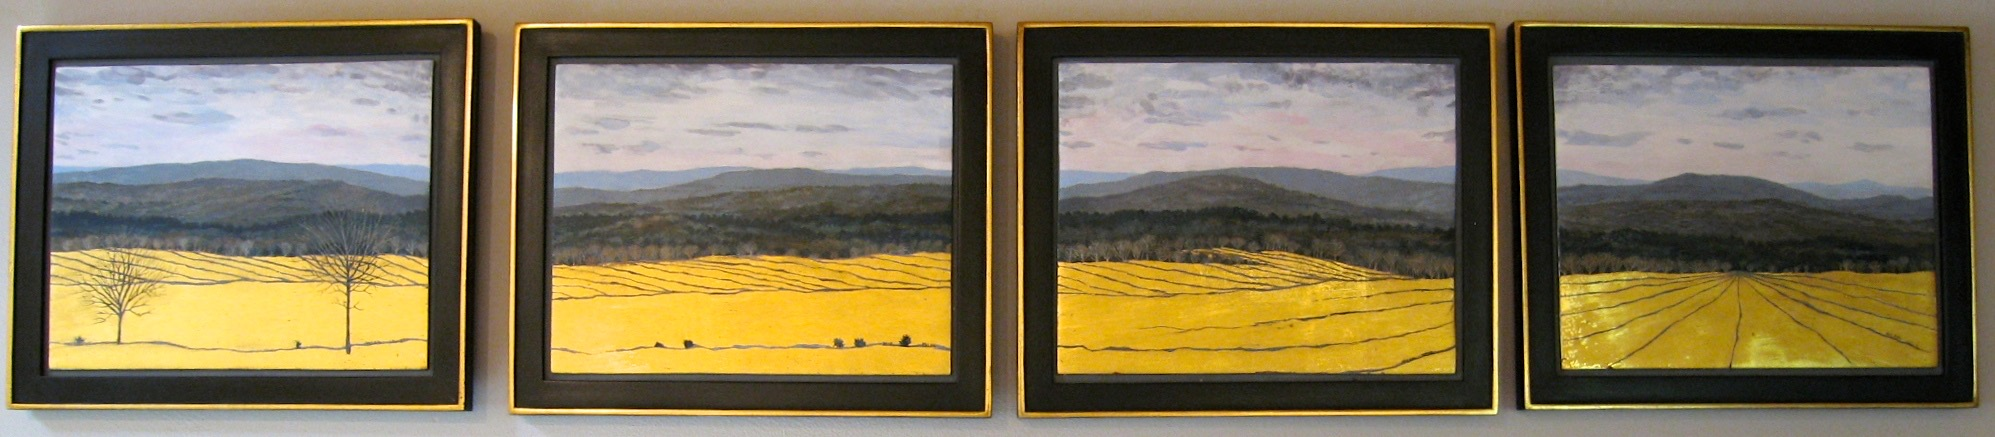 Four Panel Panorama   (available for purchase)